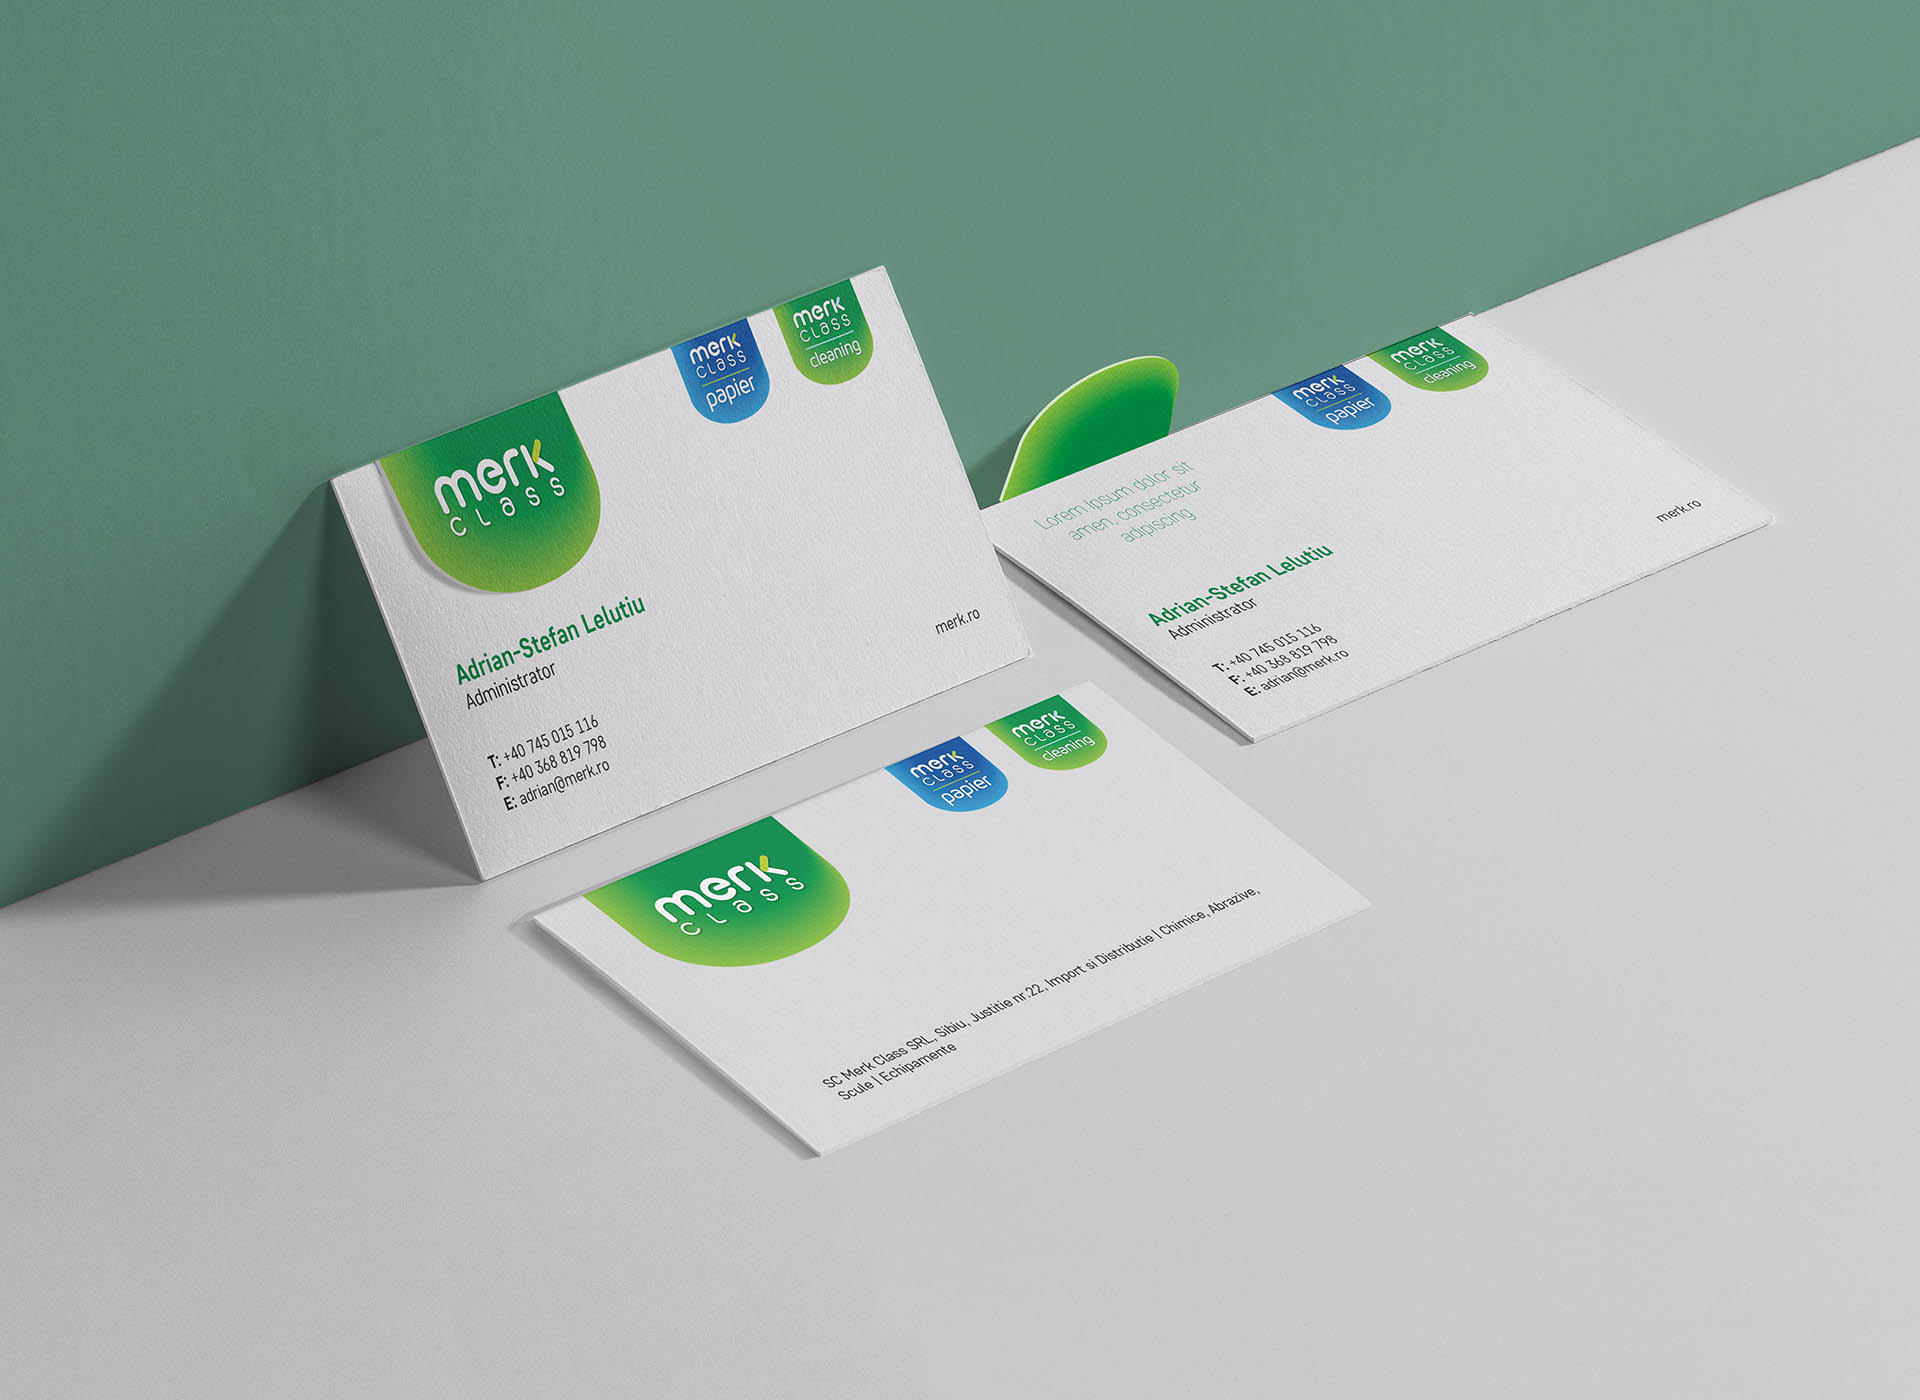 merk class portfolio inoveo business card